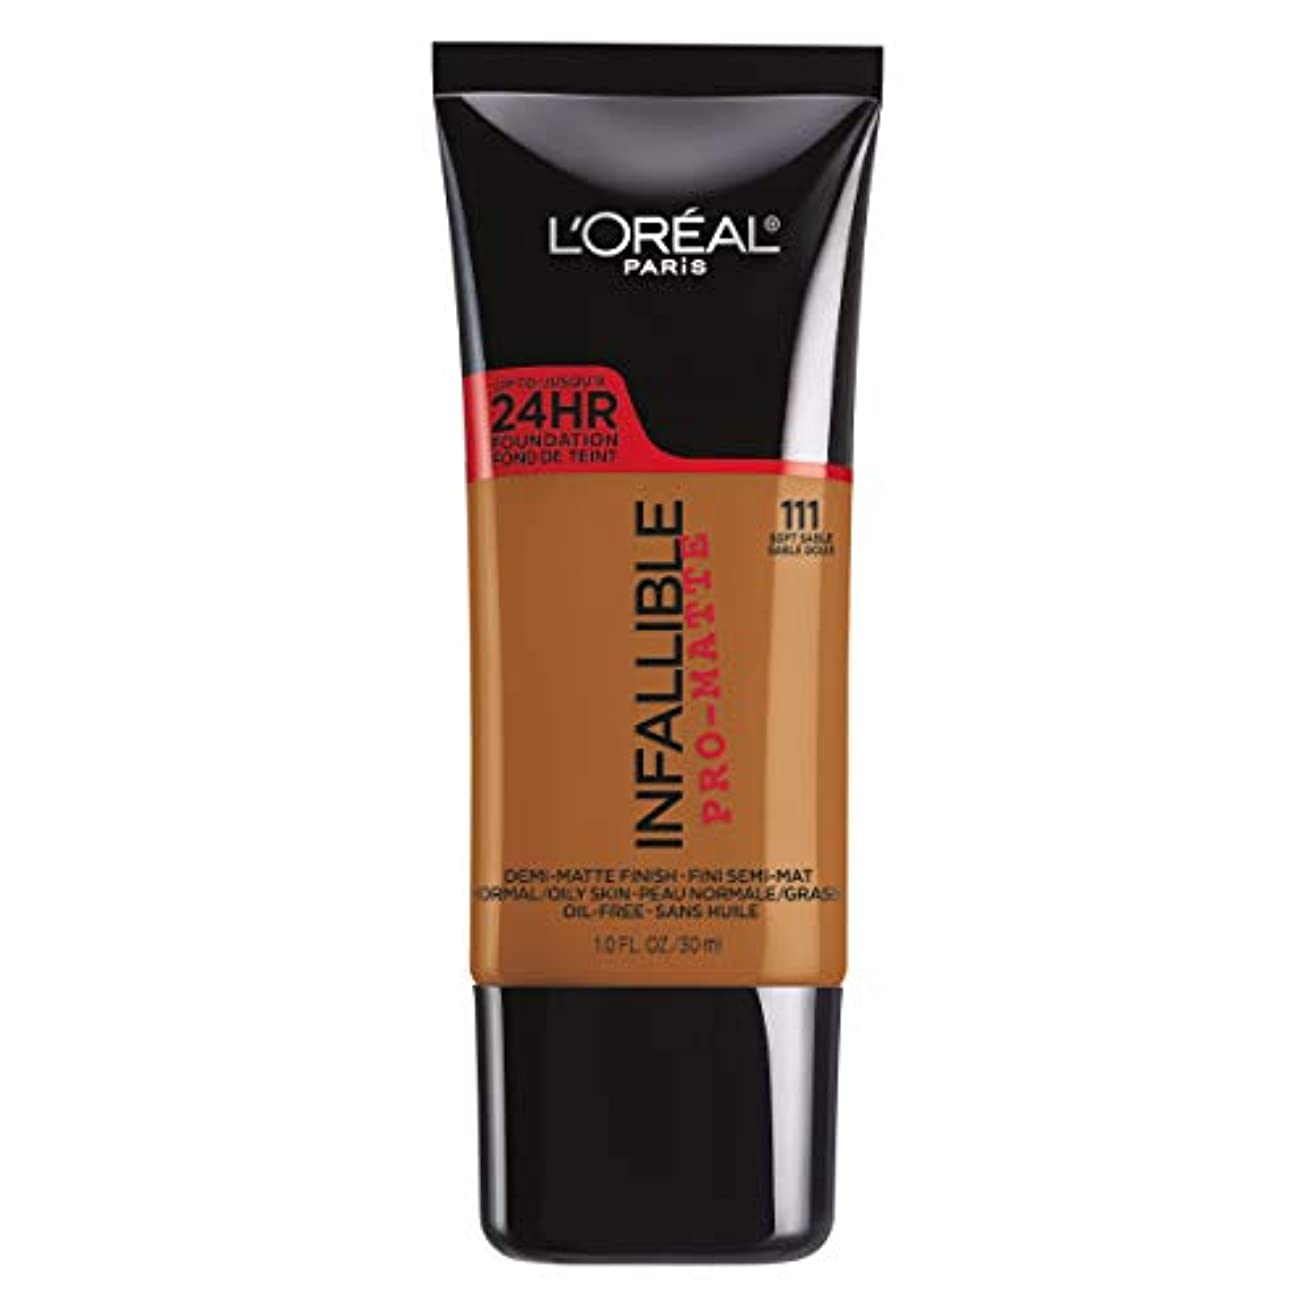 アクセス失効銛L'Oreal Paris Infallible Pro-Matte Foundation Makeup, 111 Soft Sable, 1 fl. oz[並行輸入品]